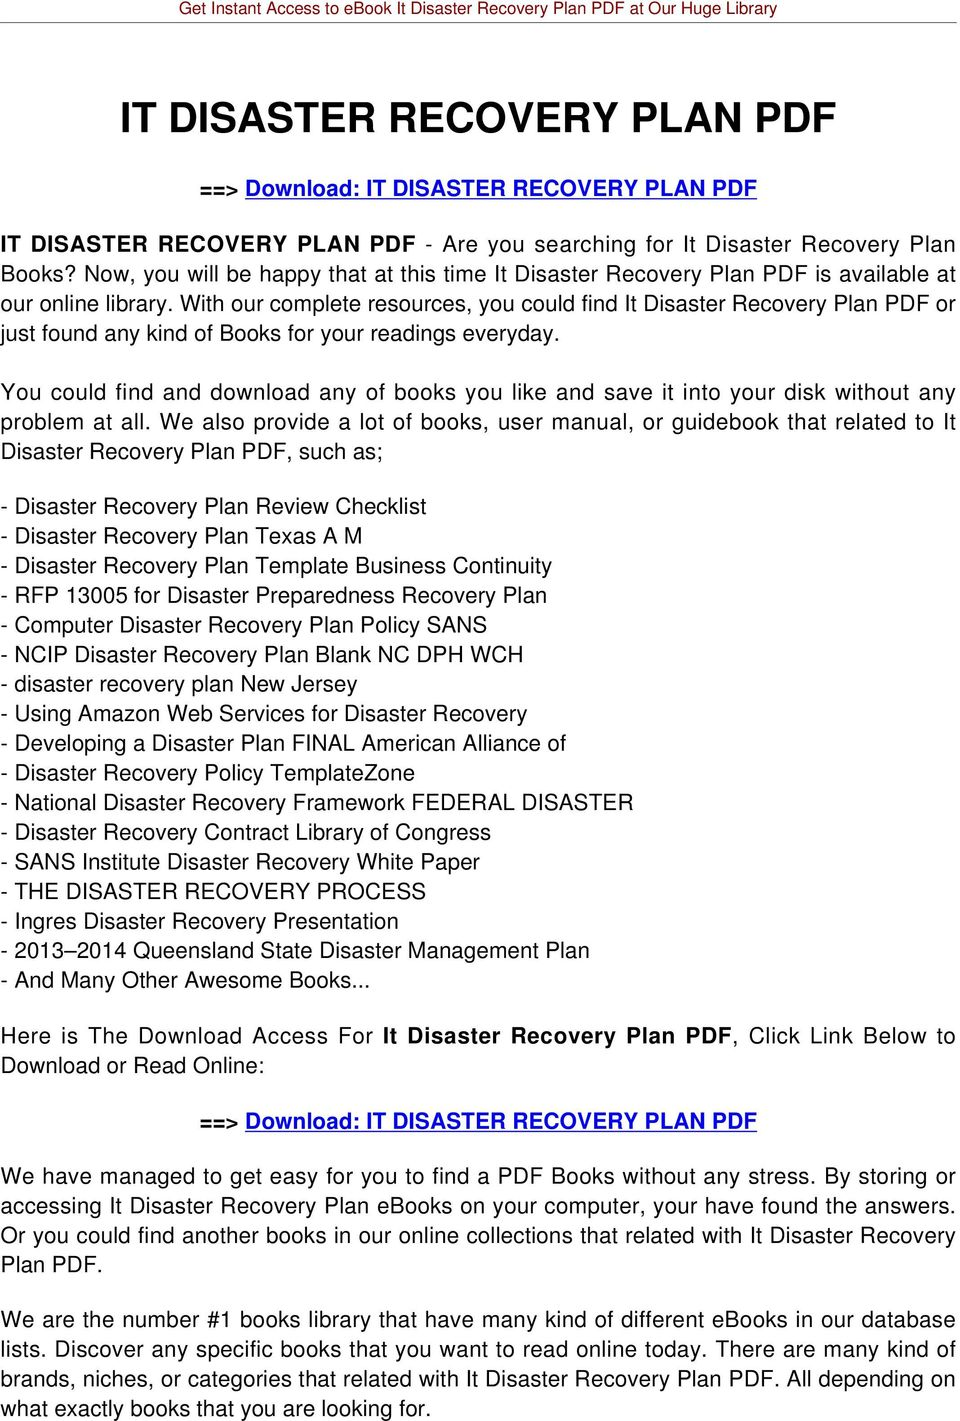 With our complete resources, you could find It Disaster Recovery Plan PDF or just found any kind of Books for your readings everyday.